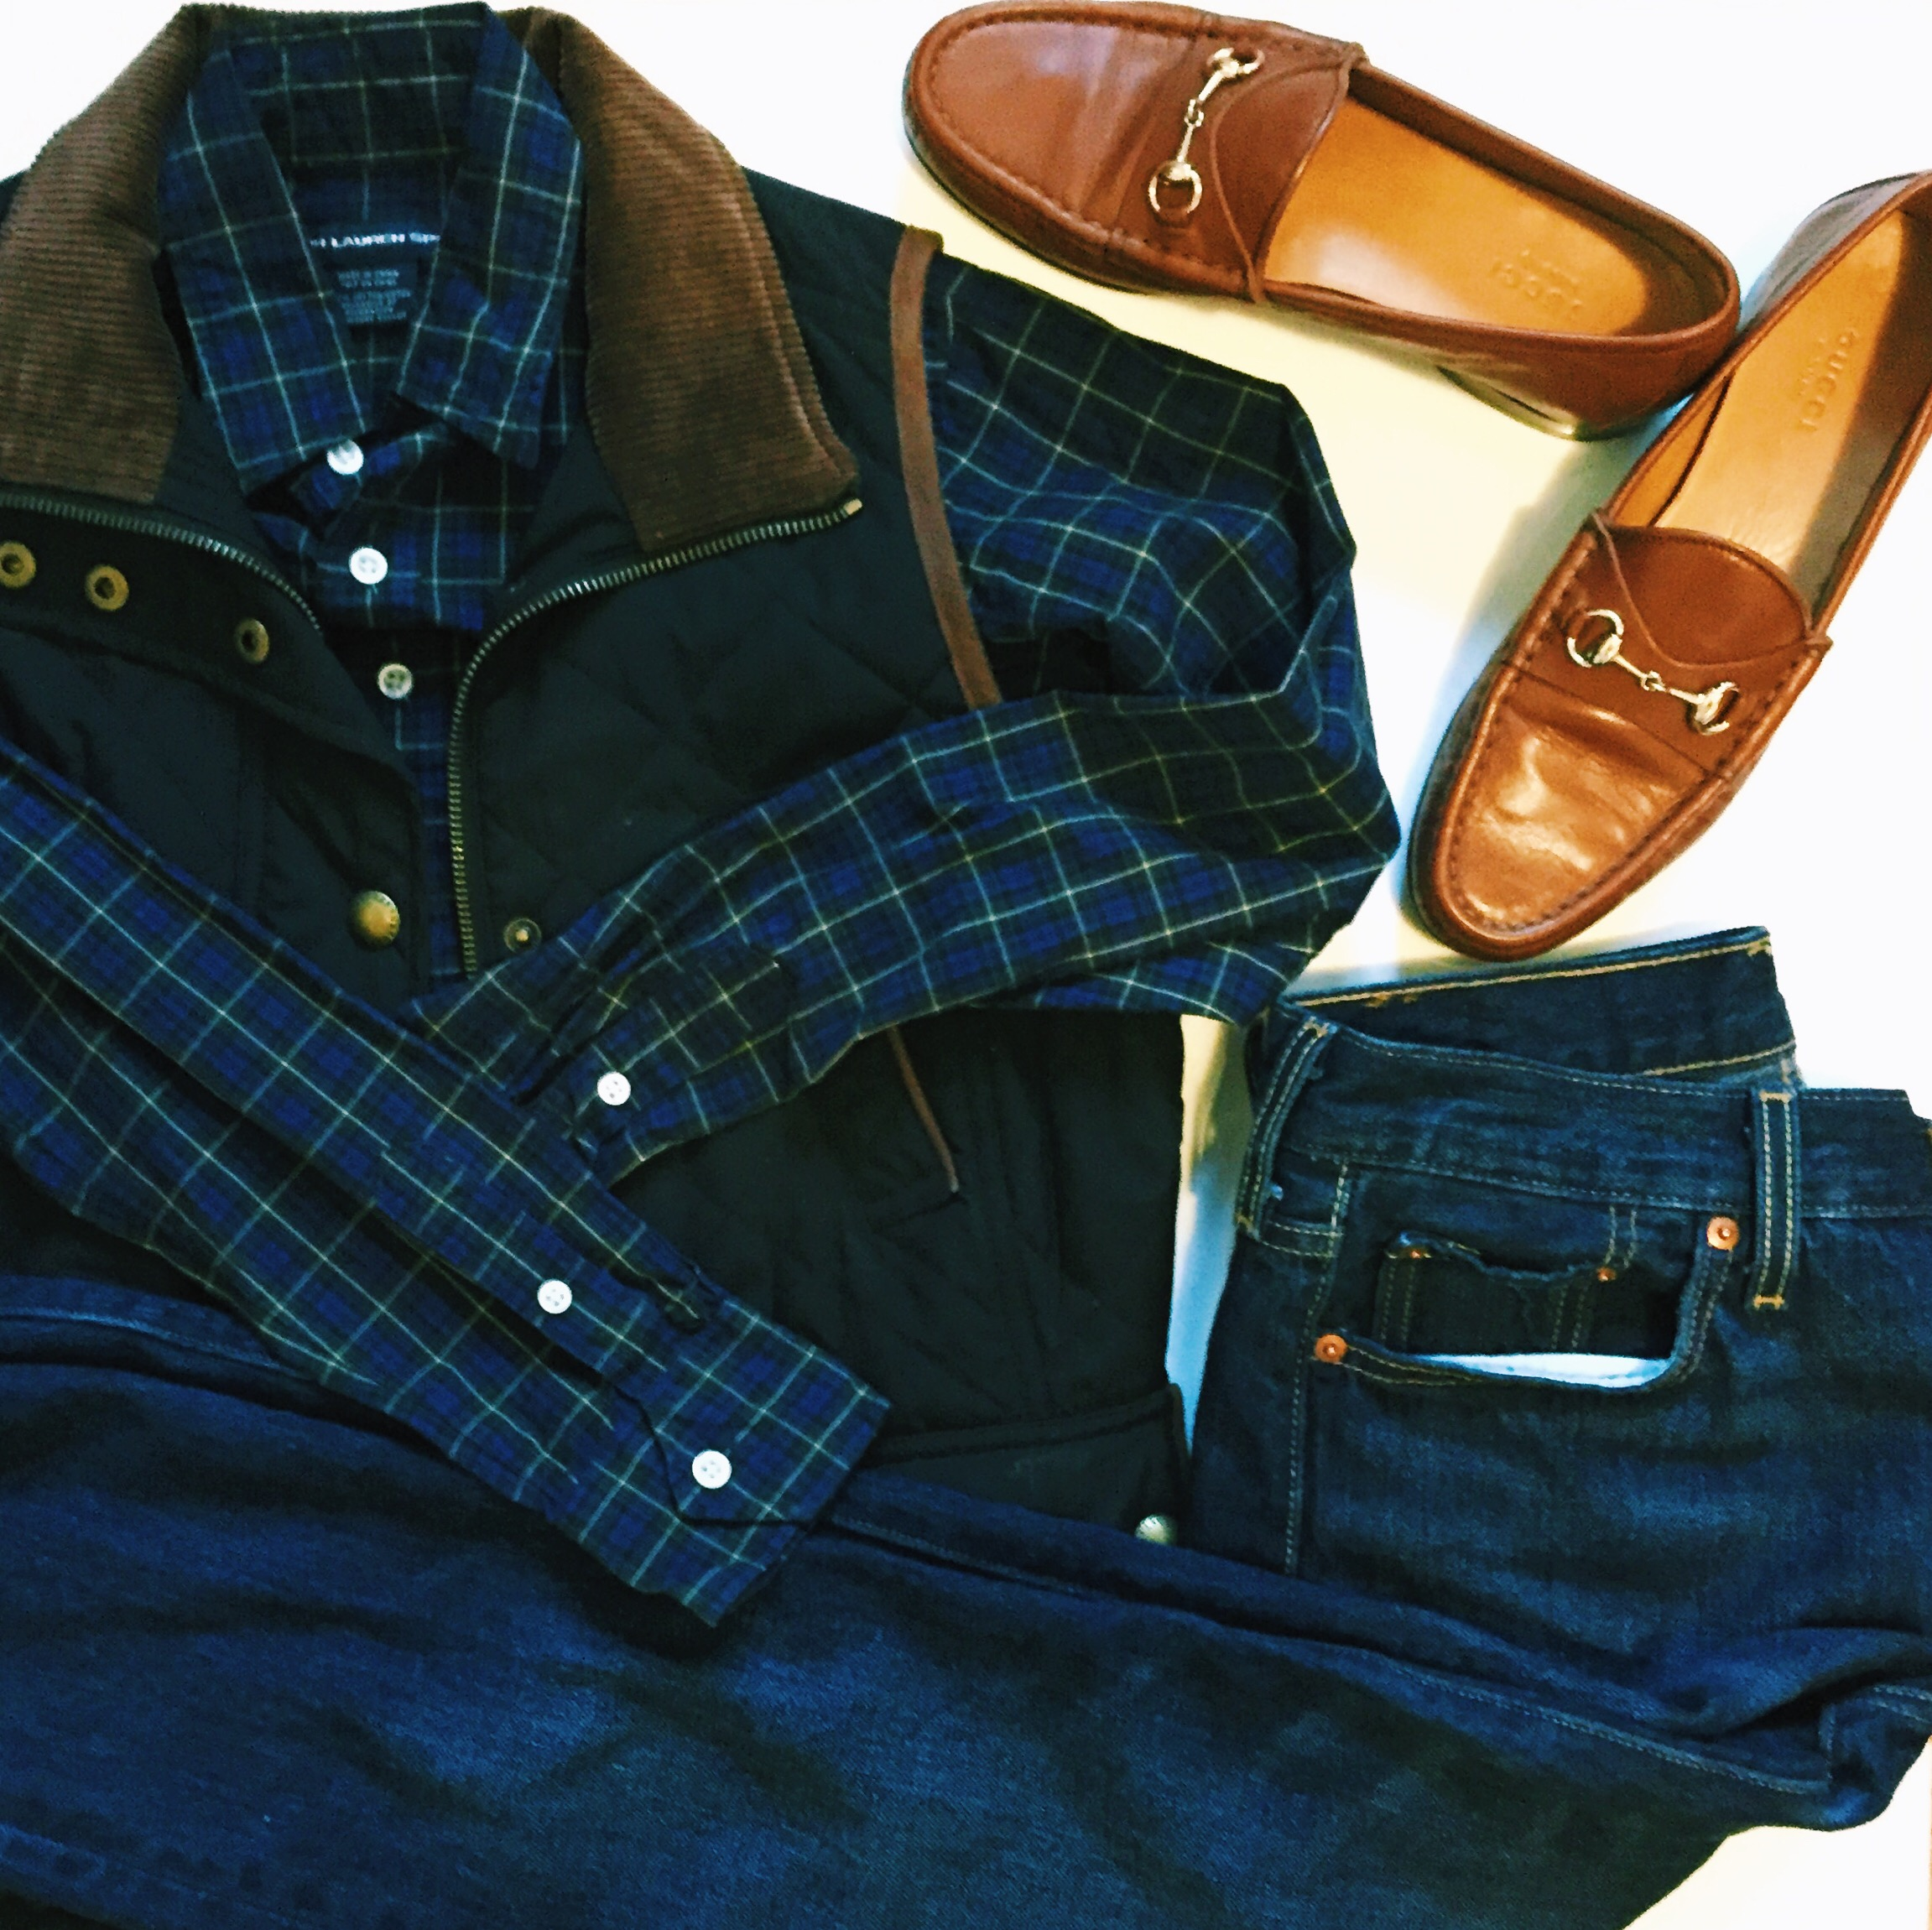 Ralph Lauren Plaid Shirt Ralph Lauren Quilted Vest Gucci Loafers Levis 501 CT Jeans.jpeg